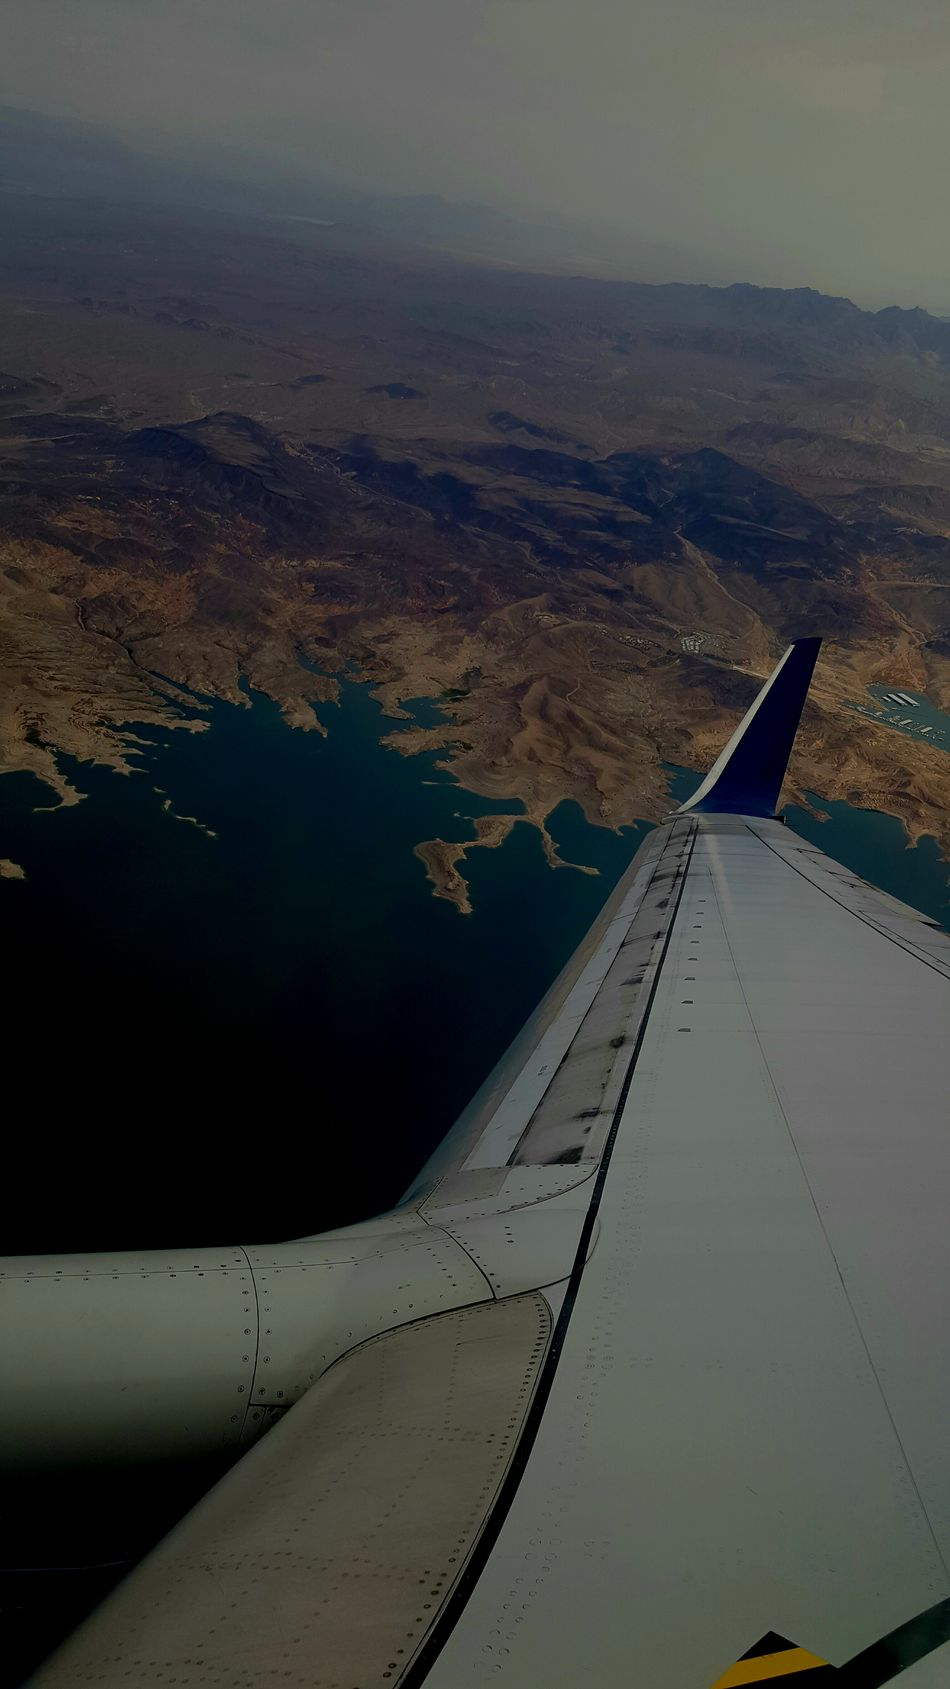 Traveling AirPlane ✈ Water Mountains Airplane Wing Airplane View Delta Airlines Traveling Photography Scenery💋 Water_collection Lake View Lakescape Mountain View Mountainscape Mountains And Valleys ValleyStream Valleys Blue Water Flying High